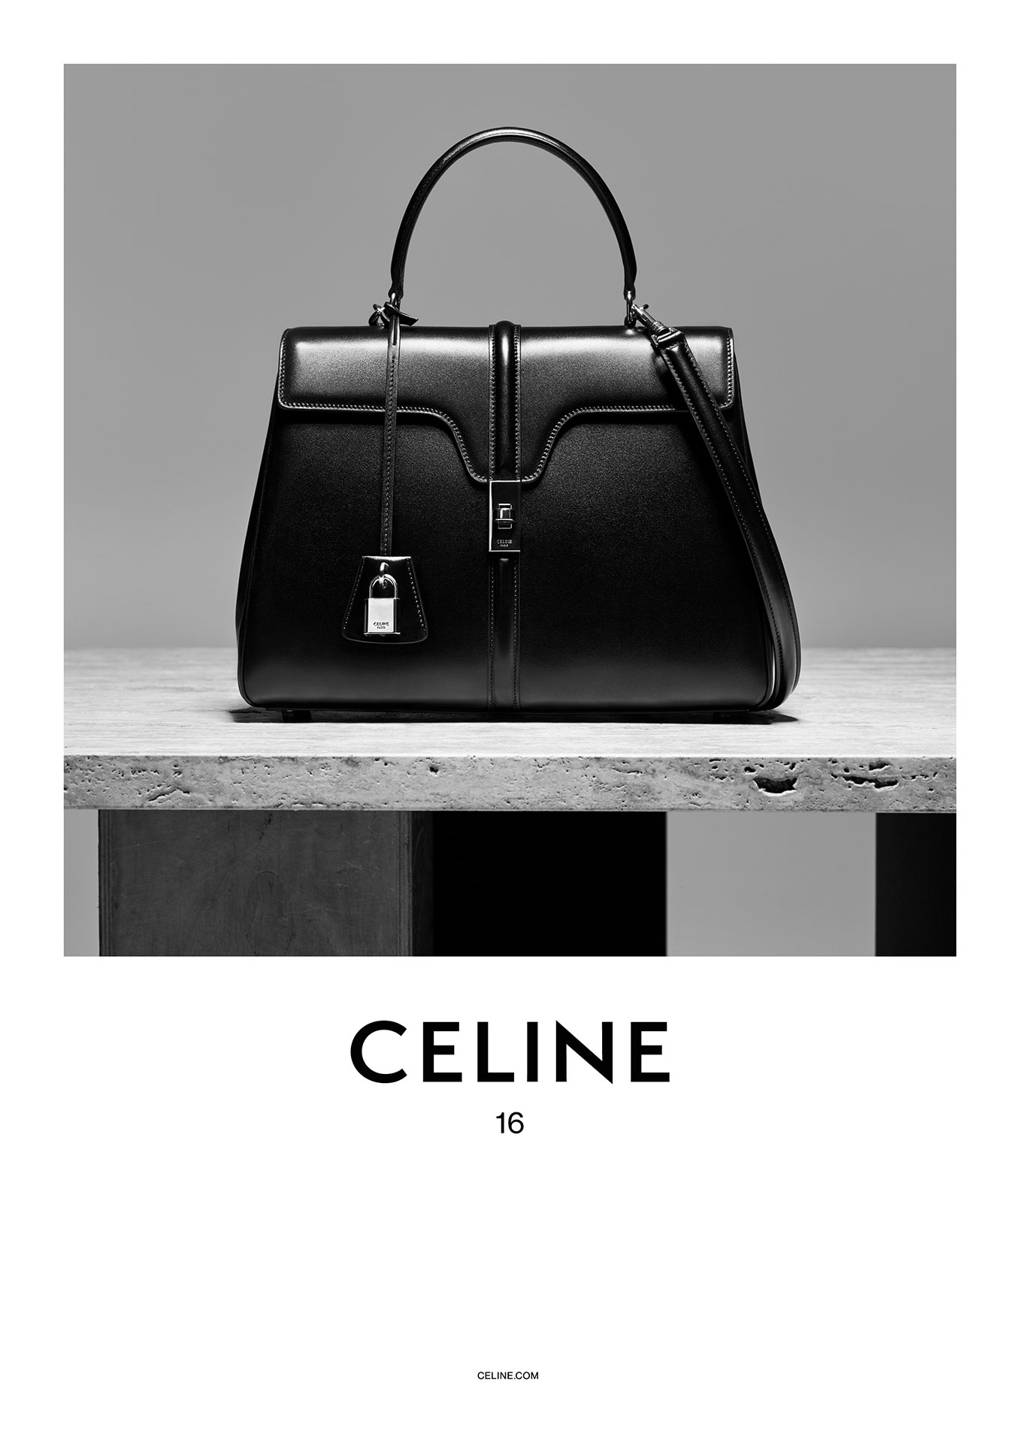 2808d684946a Celine s New-Era Bags Are Now Available For Purchase